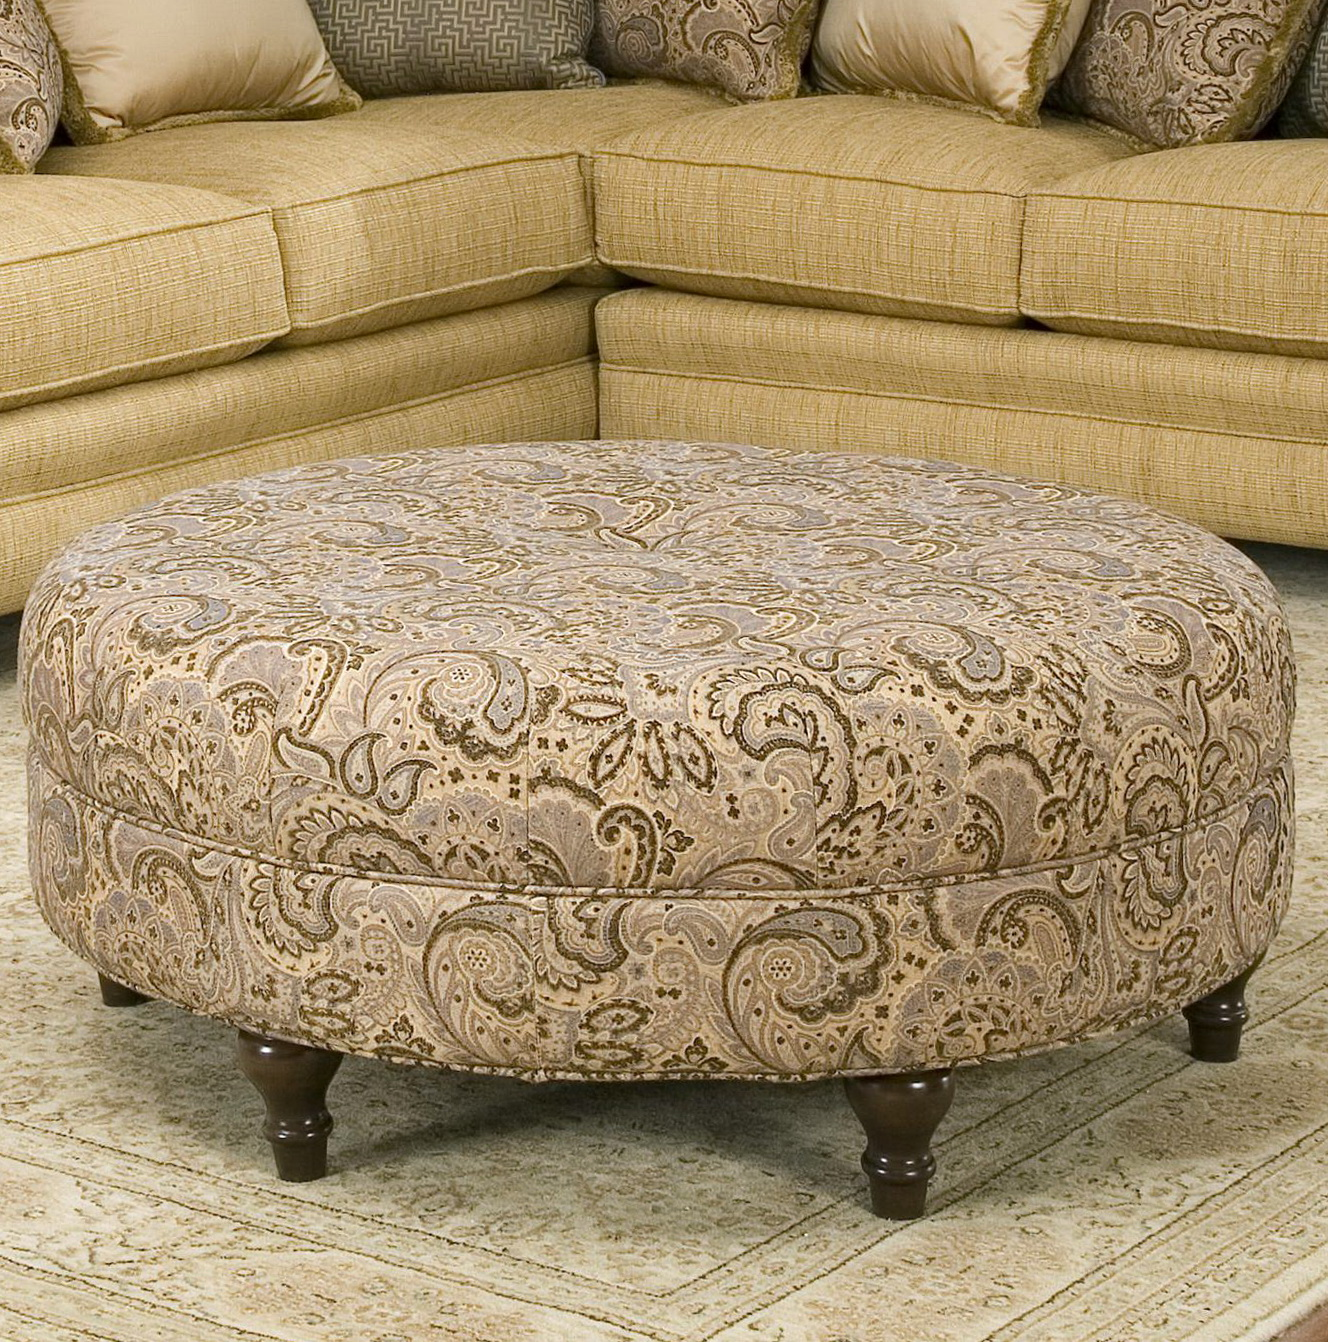 Large Round Ottoman Couch